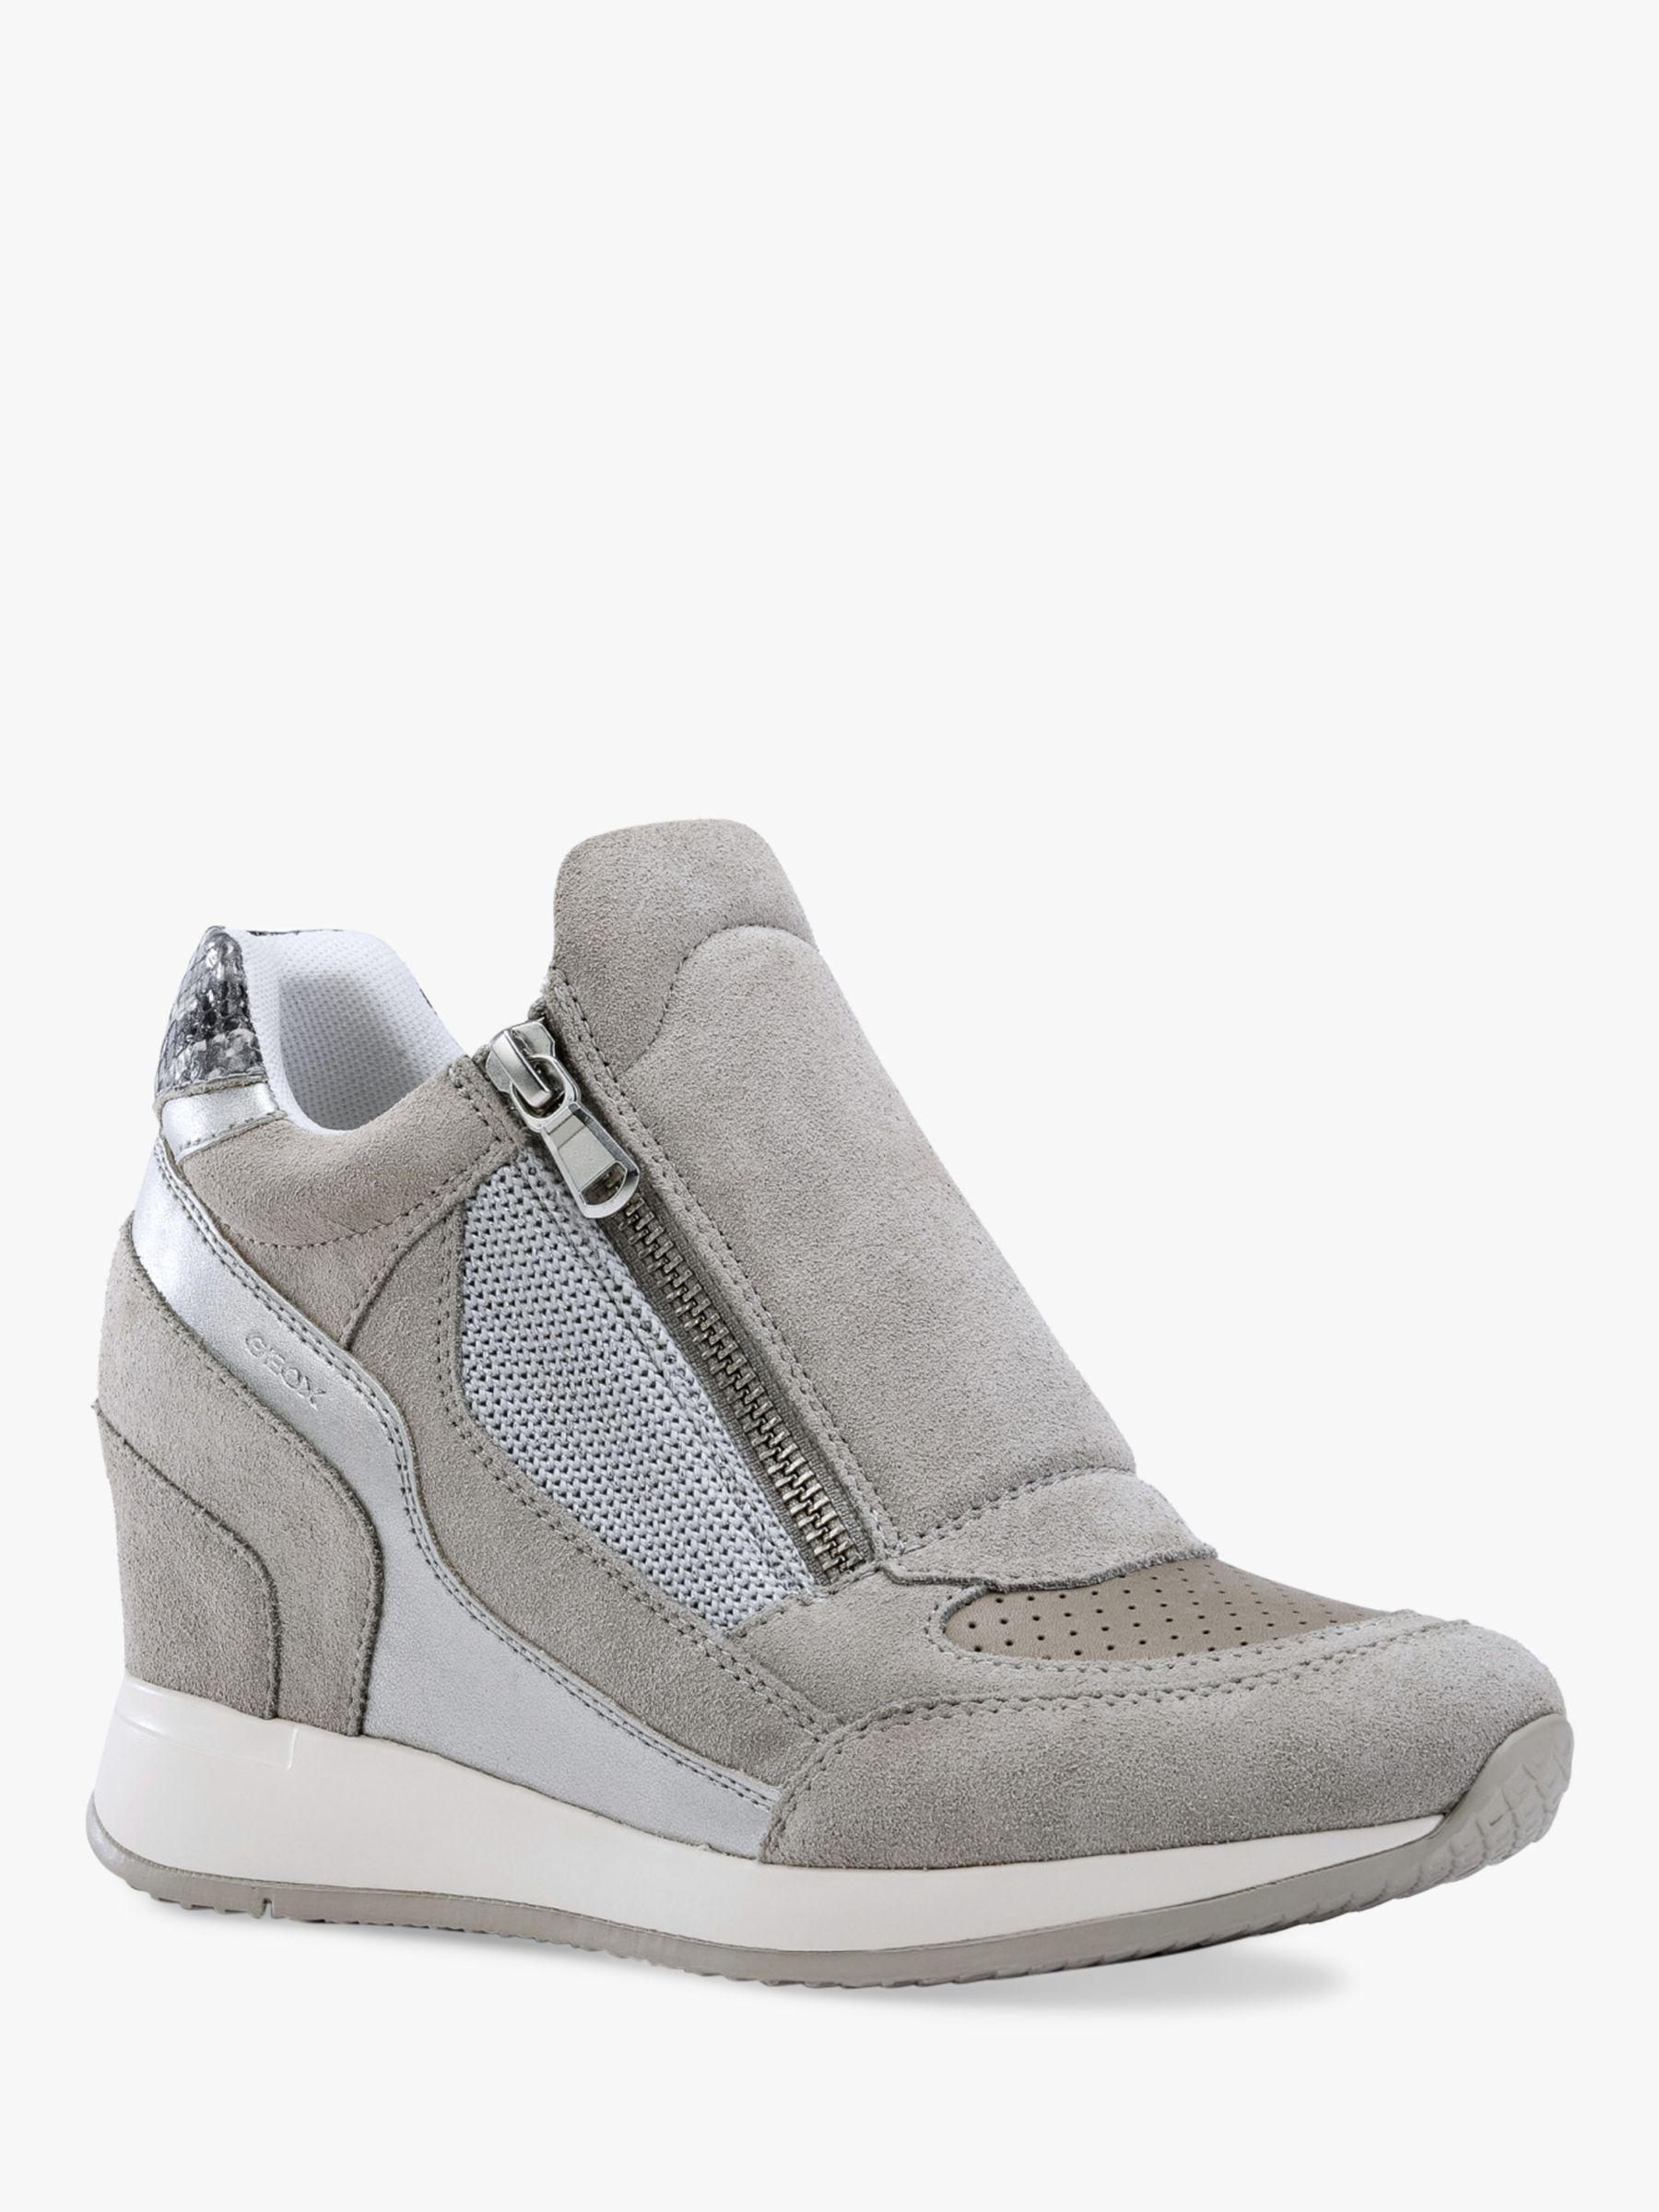 76b2a9aea2b Geox Women s Nydame Wedge Heel Zip Up Trainers in Gray - Lyst